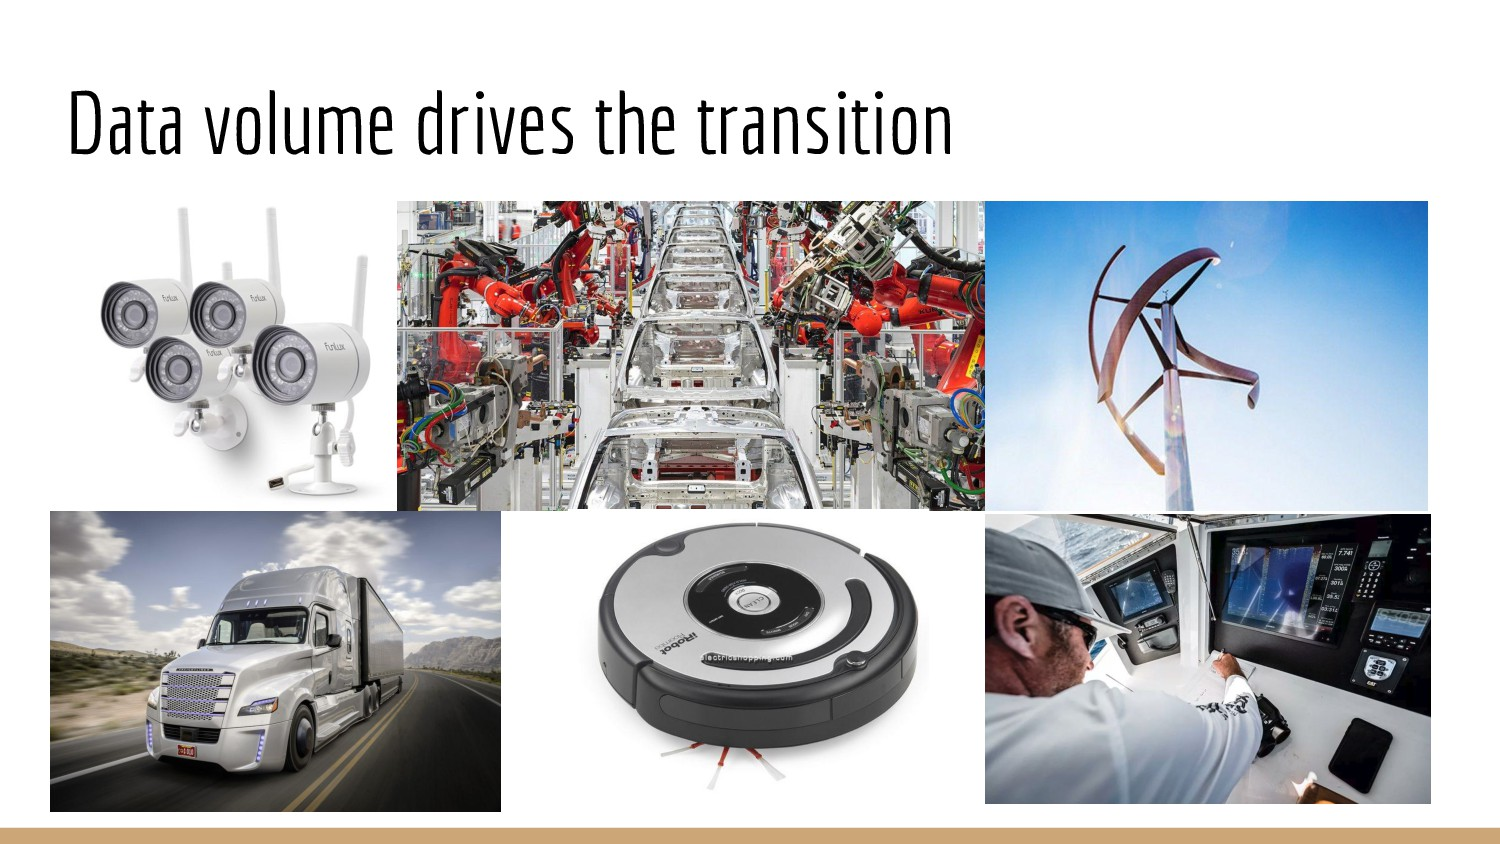 Data volume drives the transition